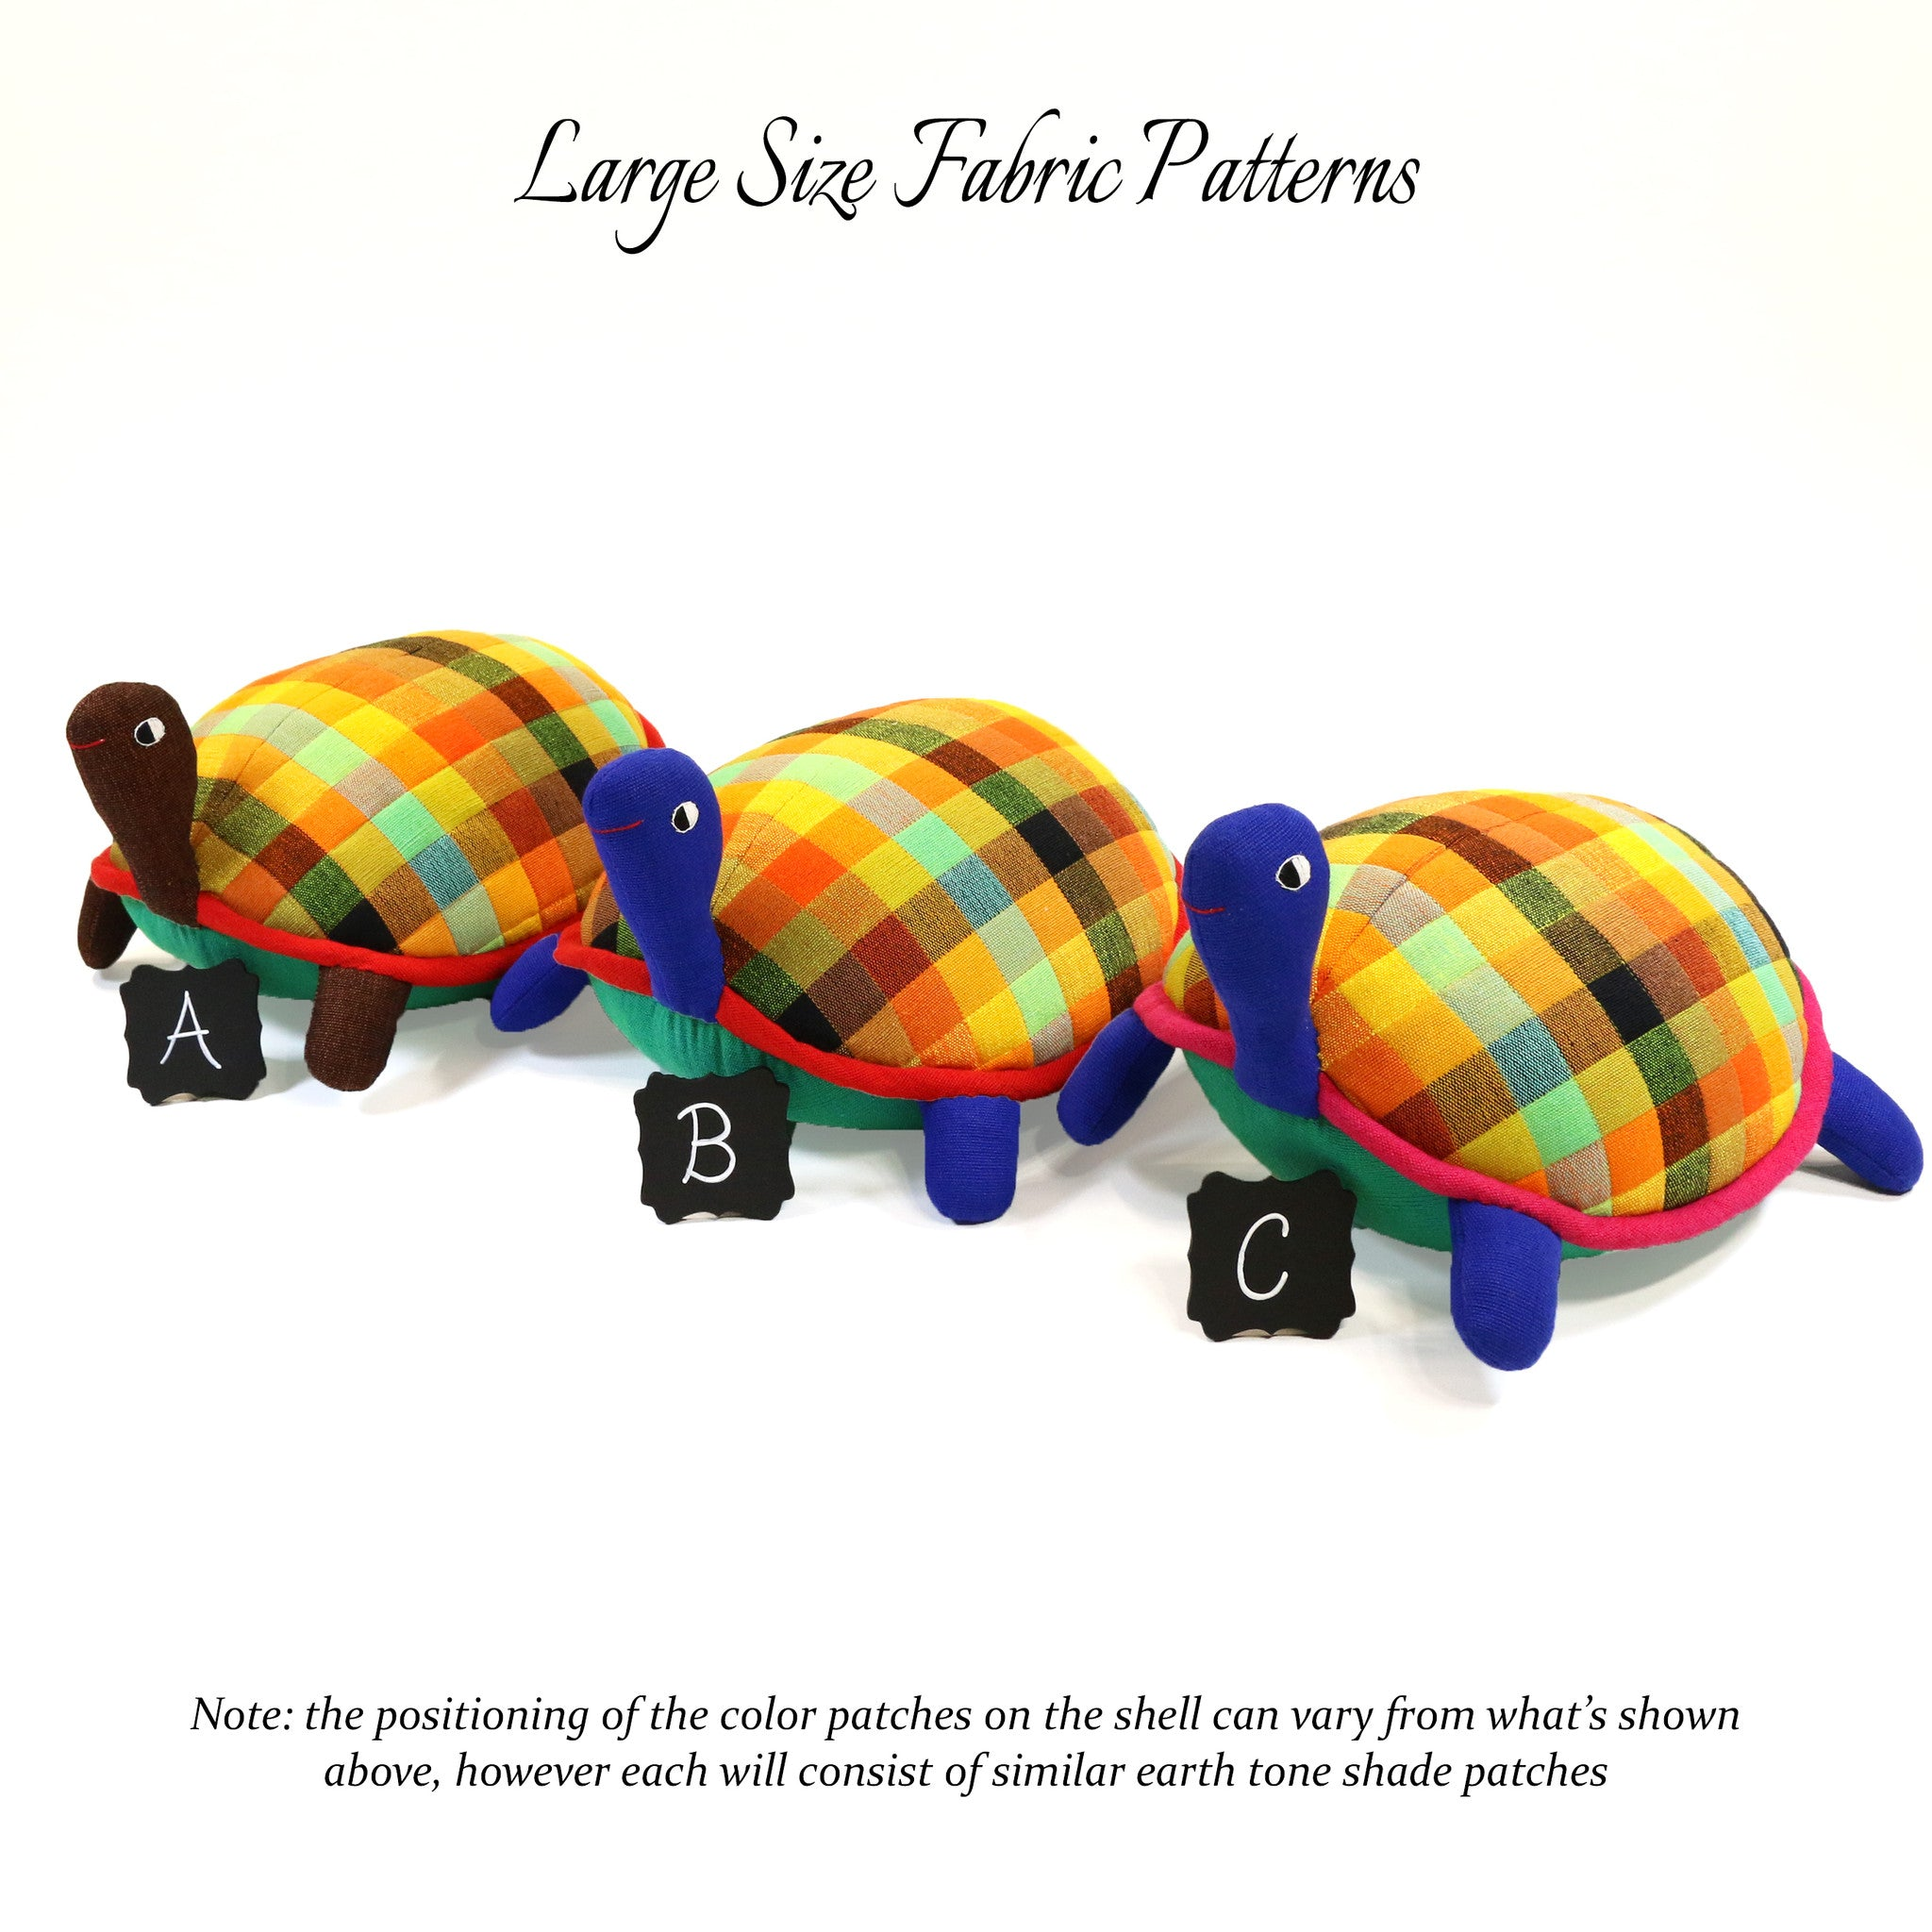 Toby, the Turtle – all large size fabric patterns shown